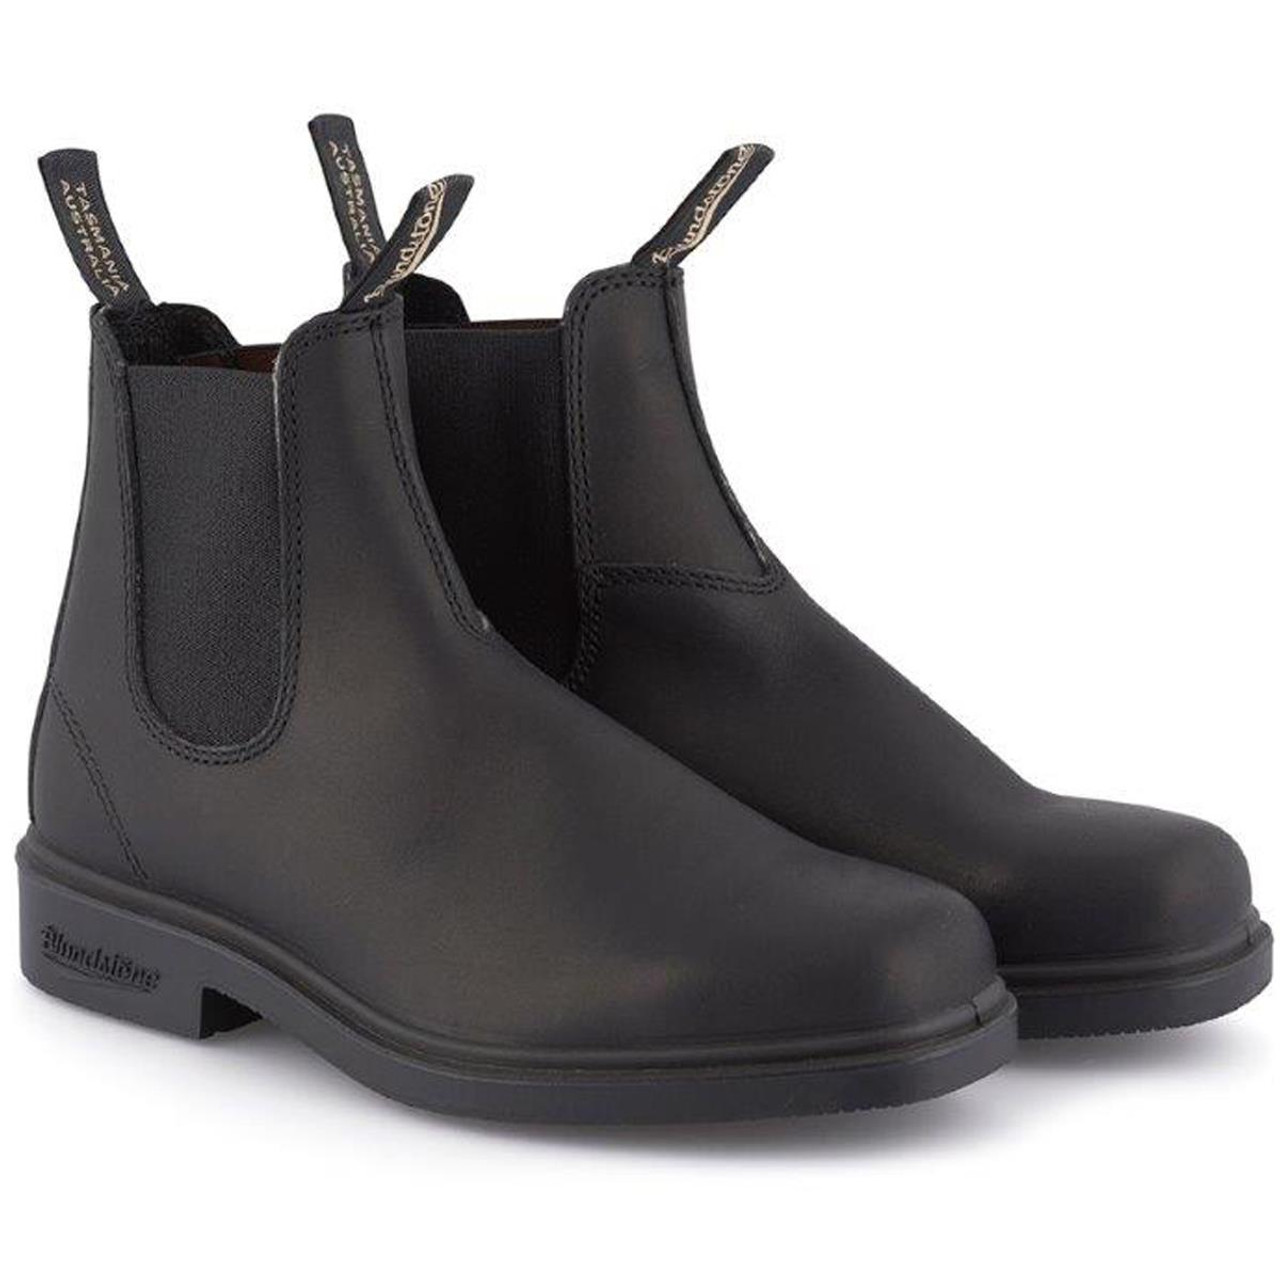 Blundstone Unisex Dress 063 Chelsea Boot